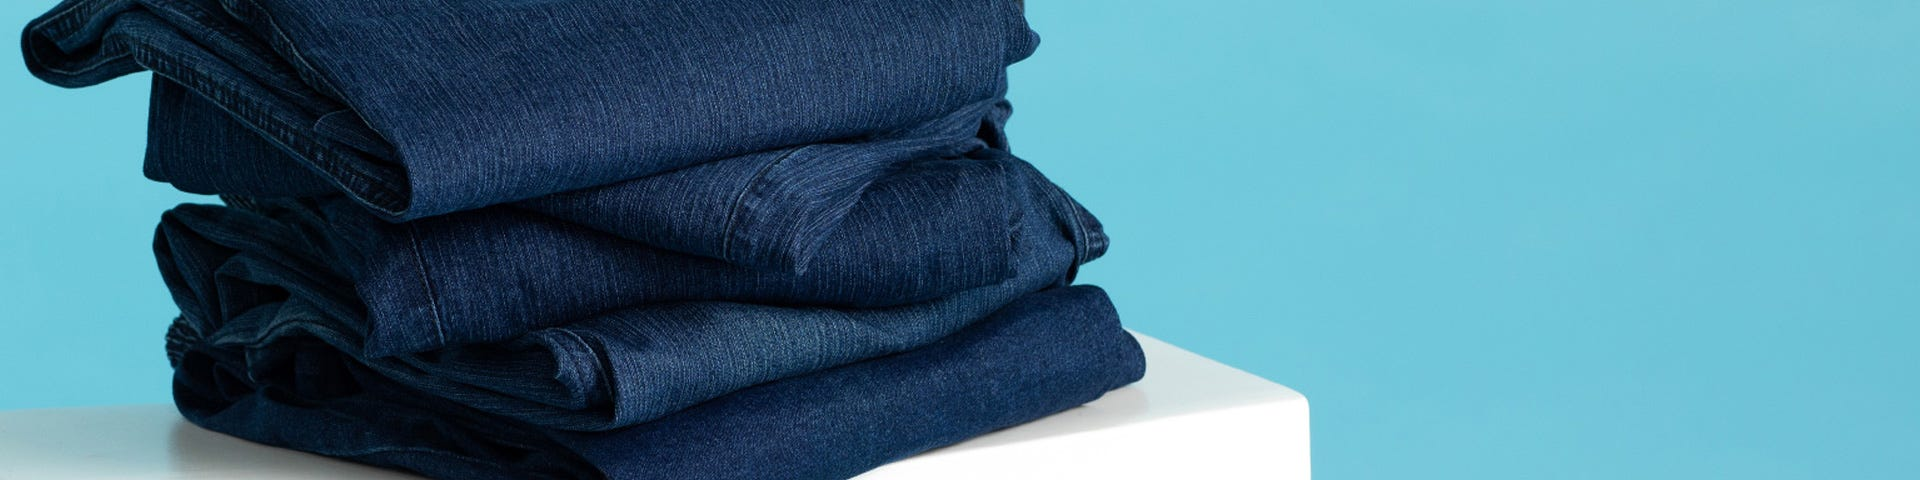 How To Care For Denim